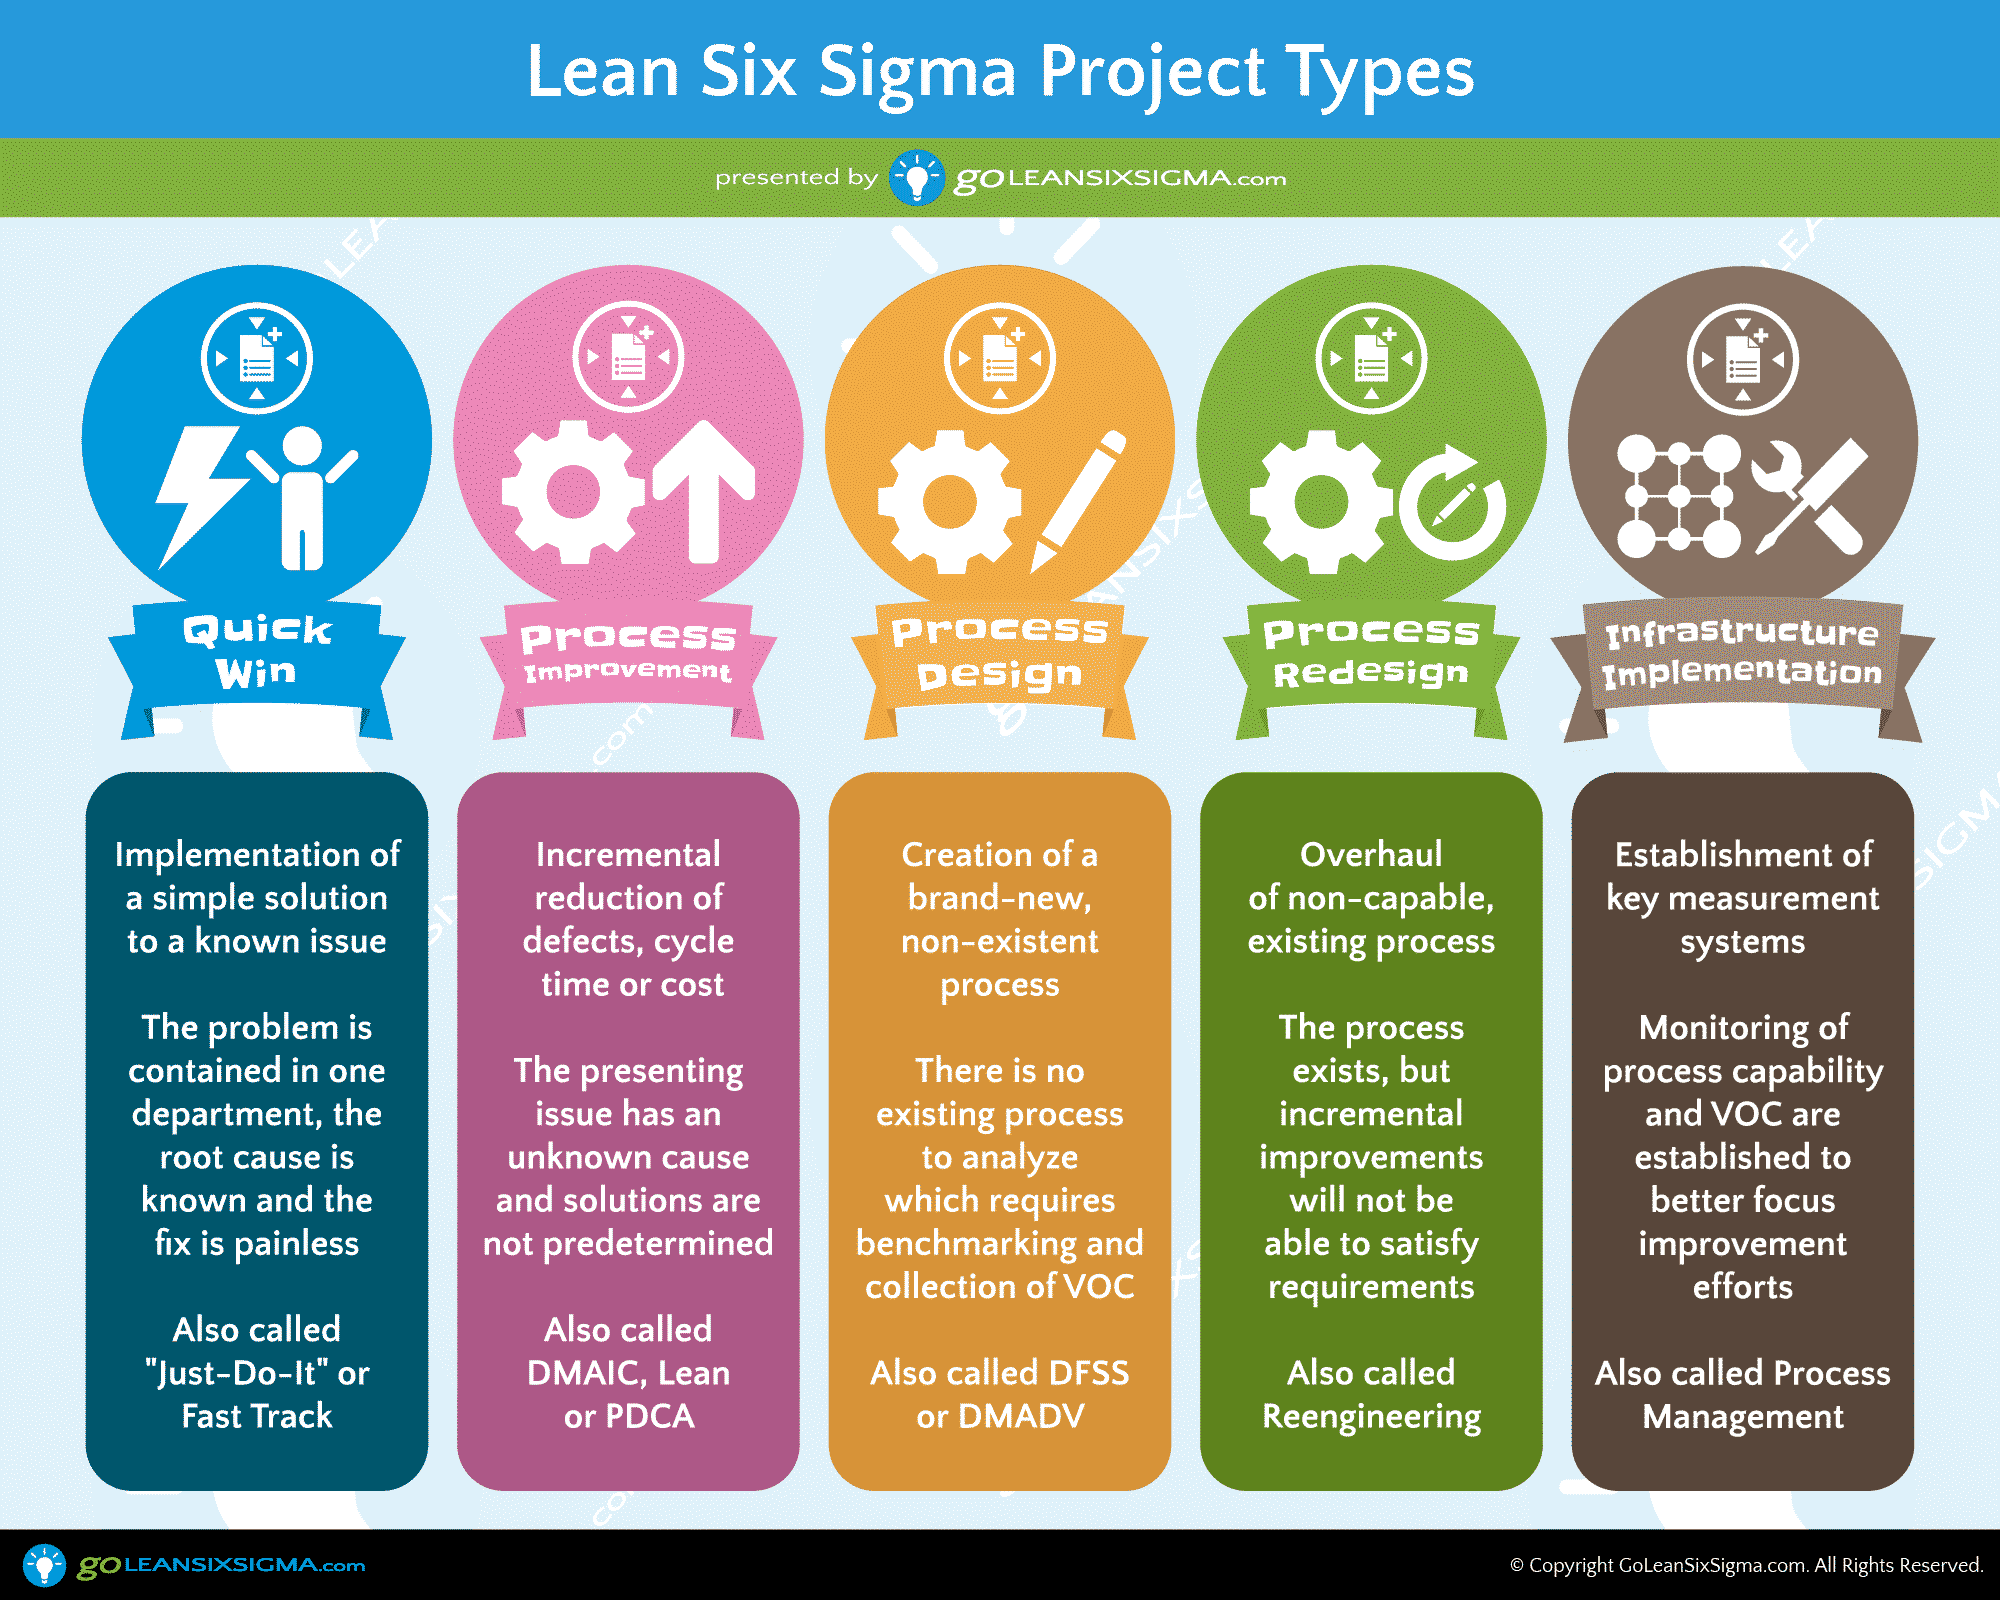 5 Lean Six Sigma Project Types